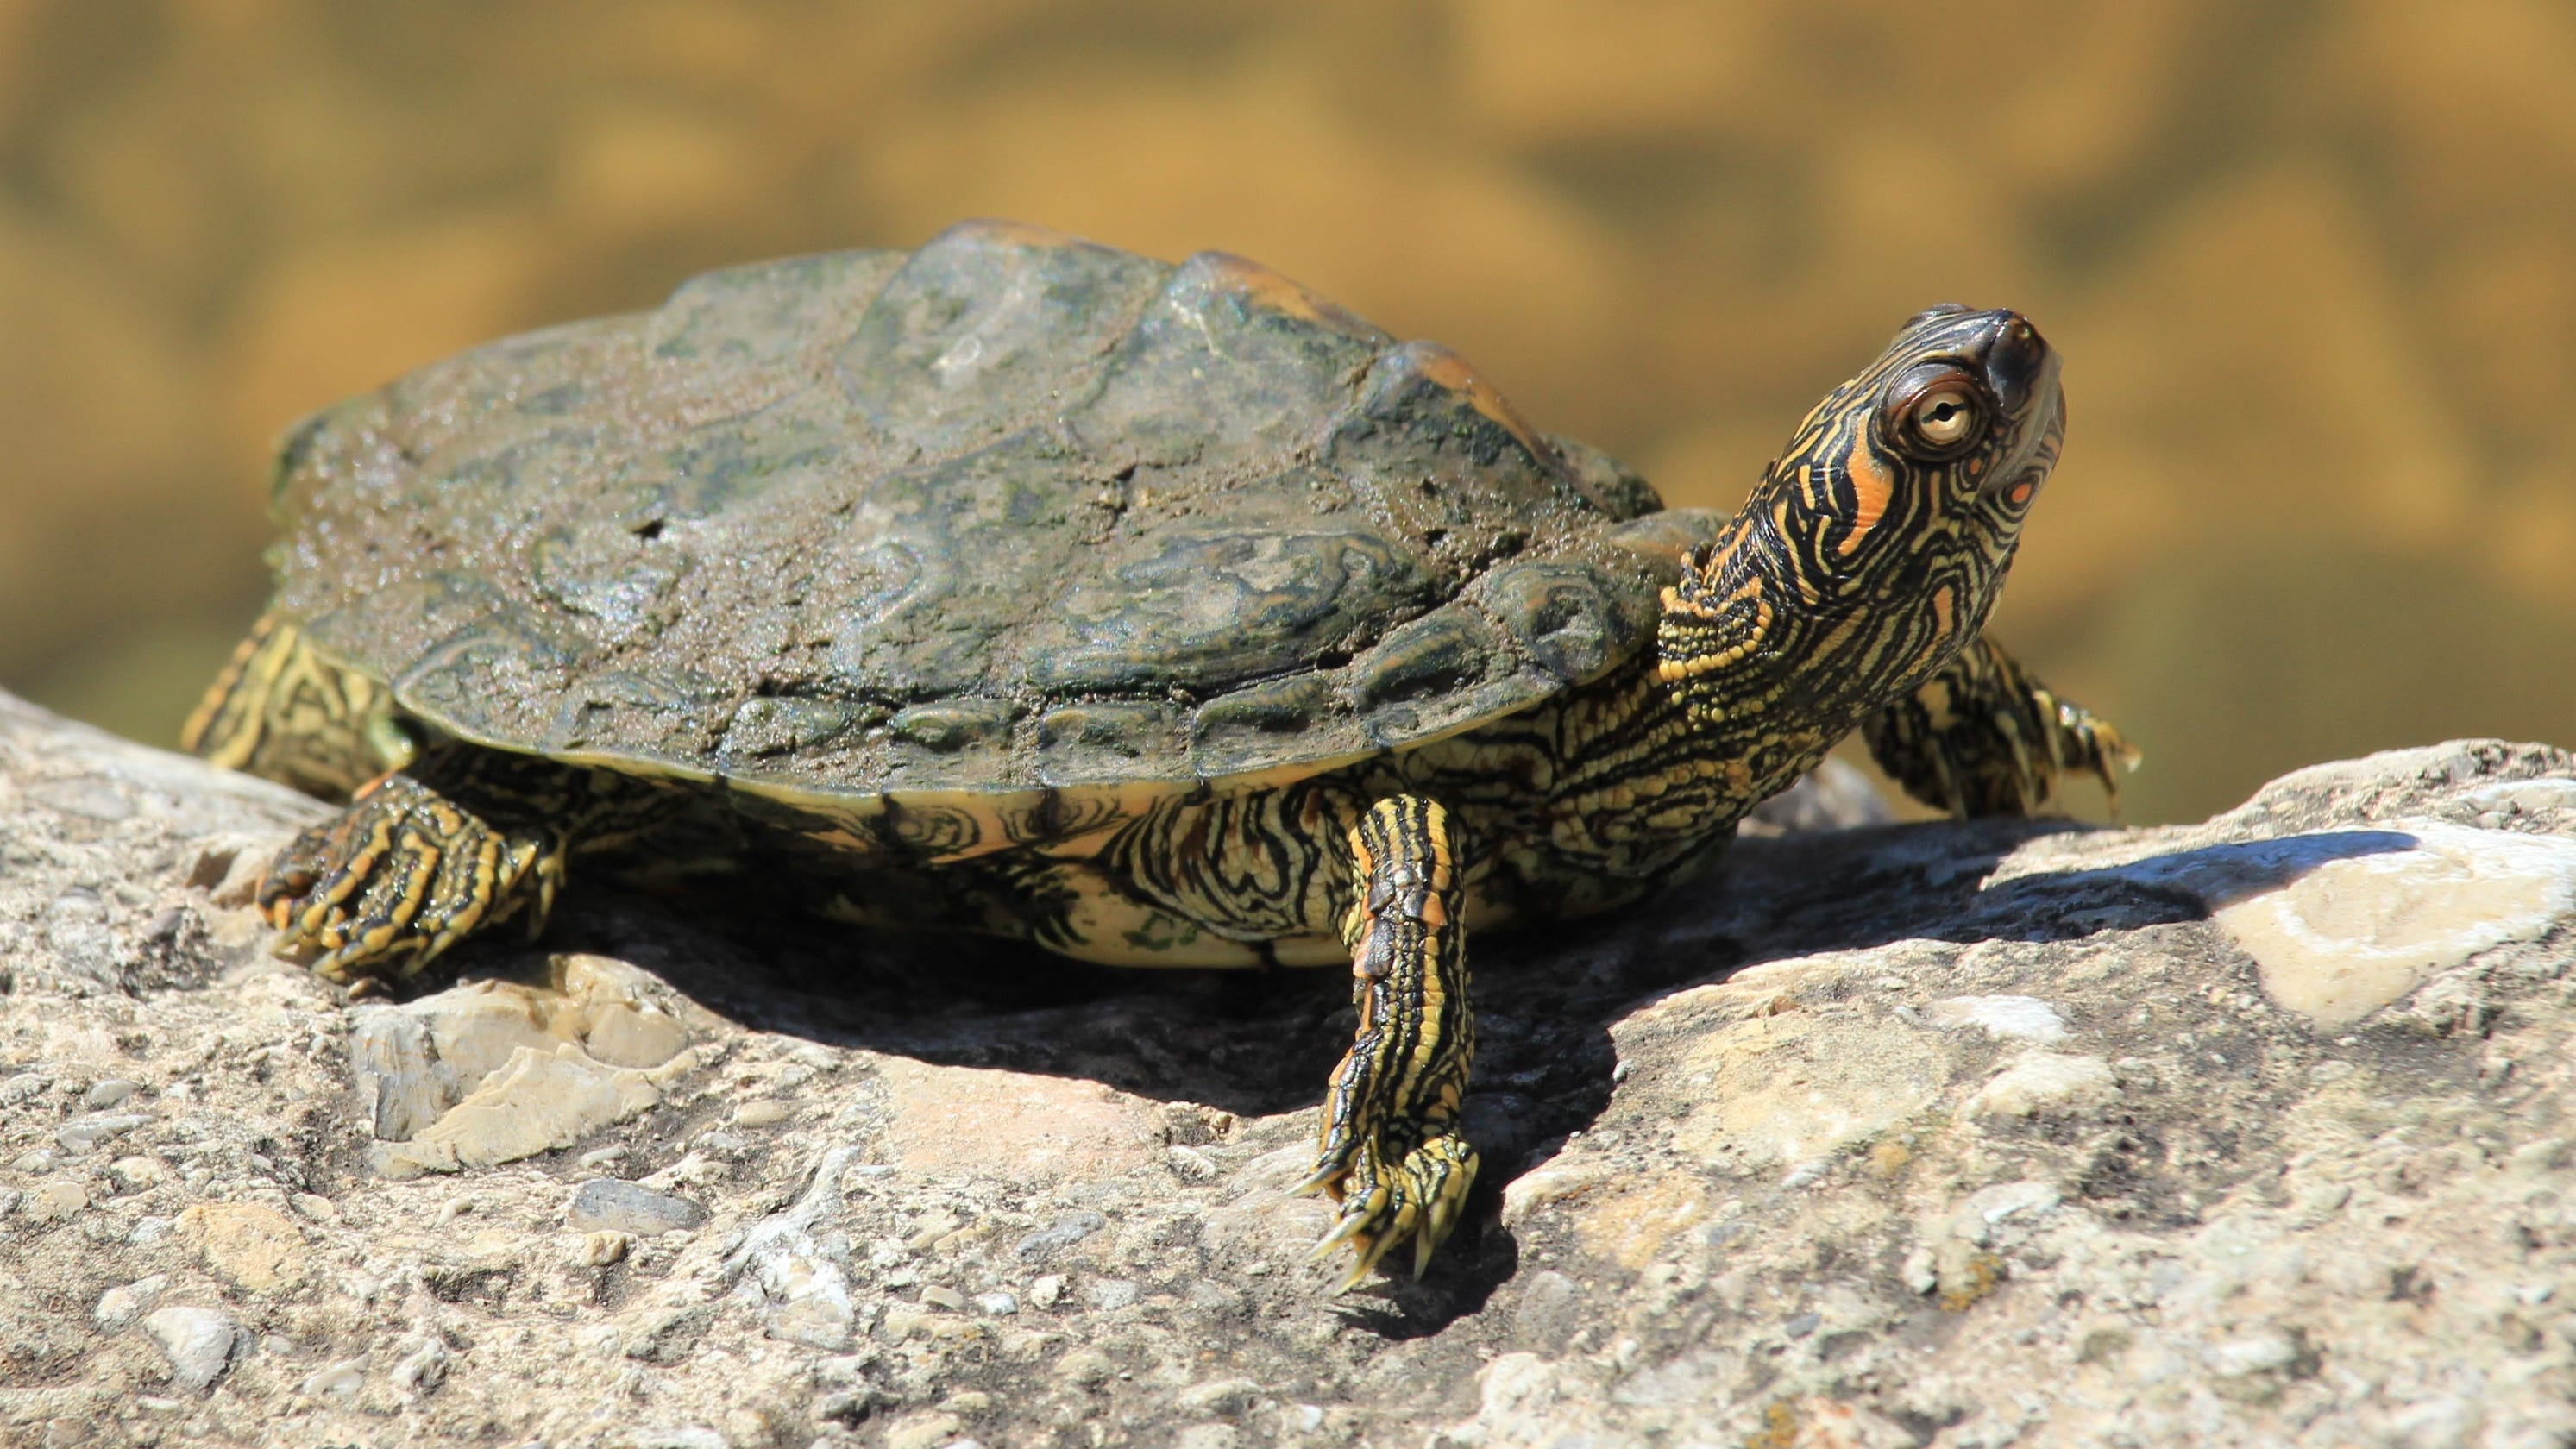 Texas Map Turtle Texas Map Turtle a small creature rarely encountered on land